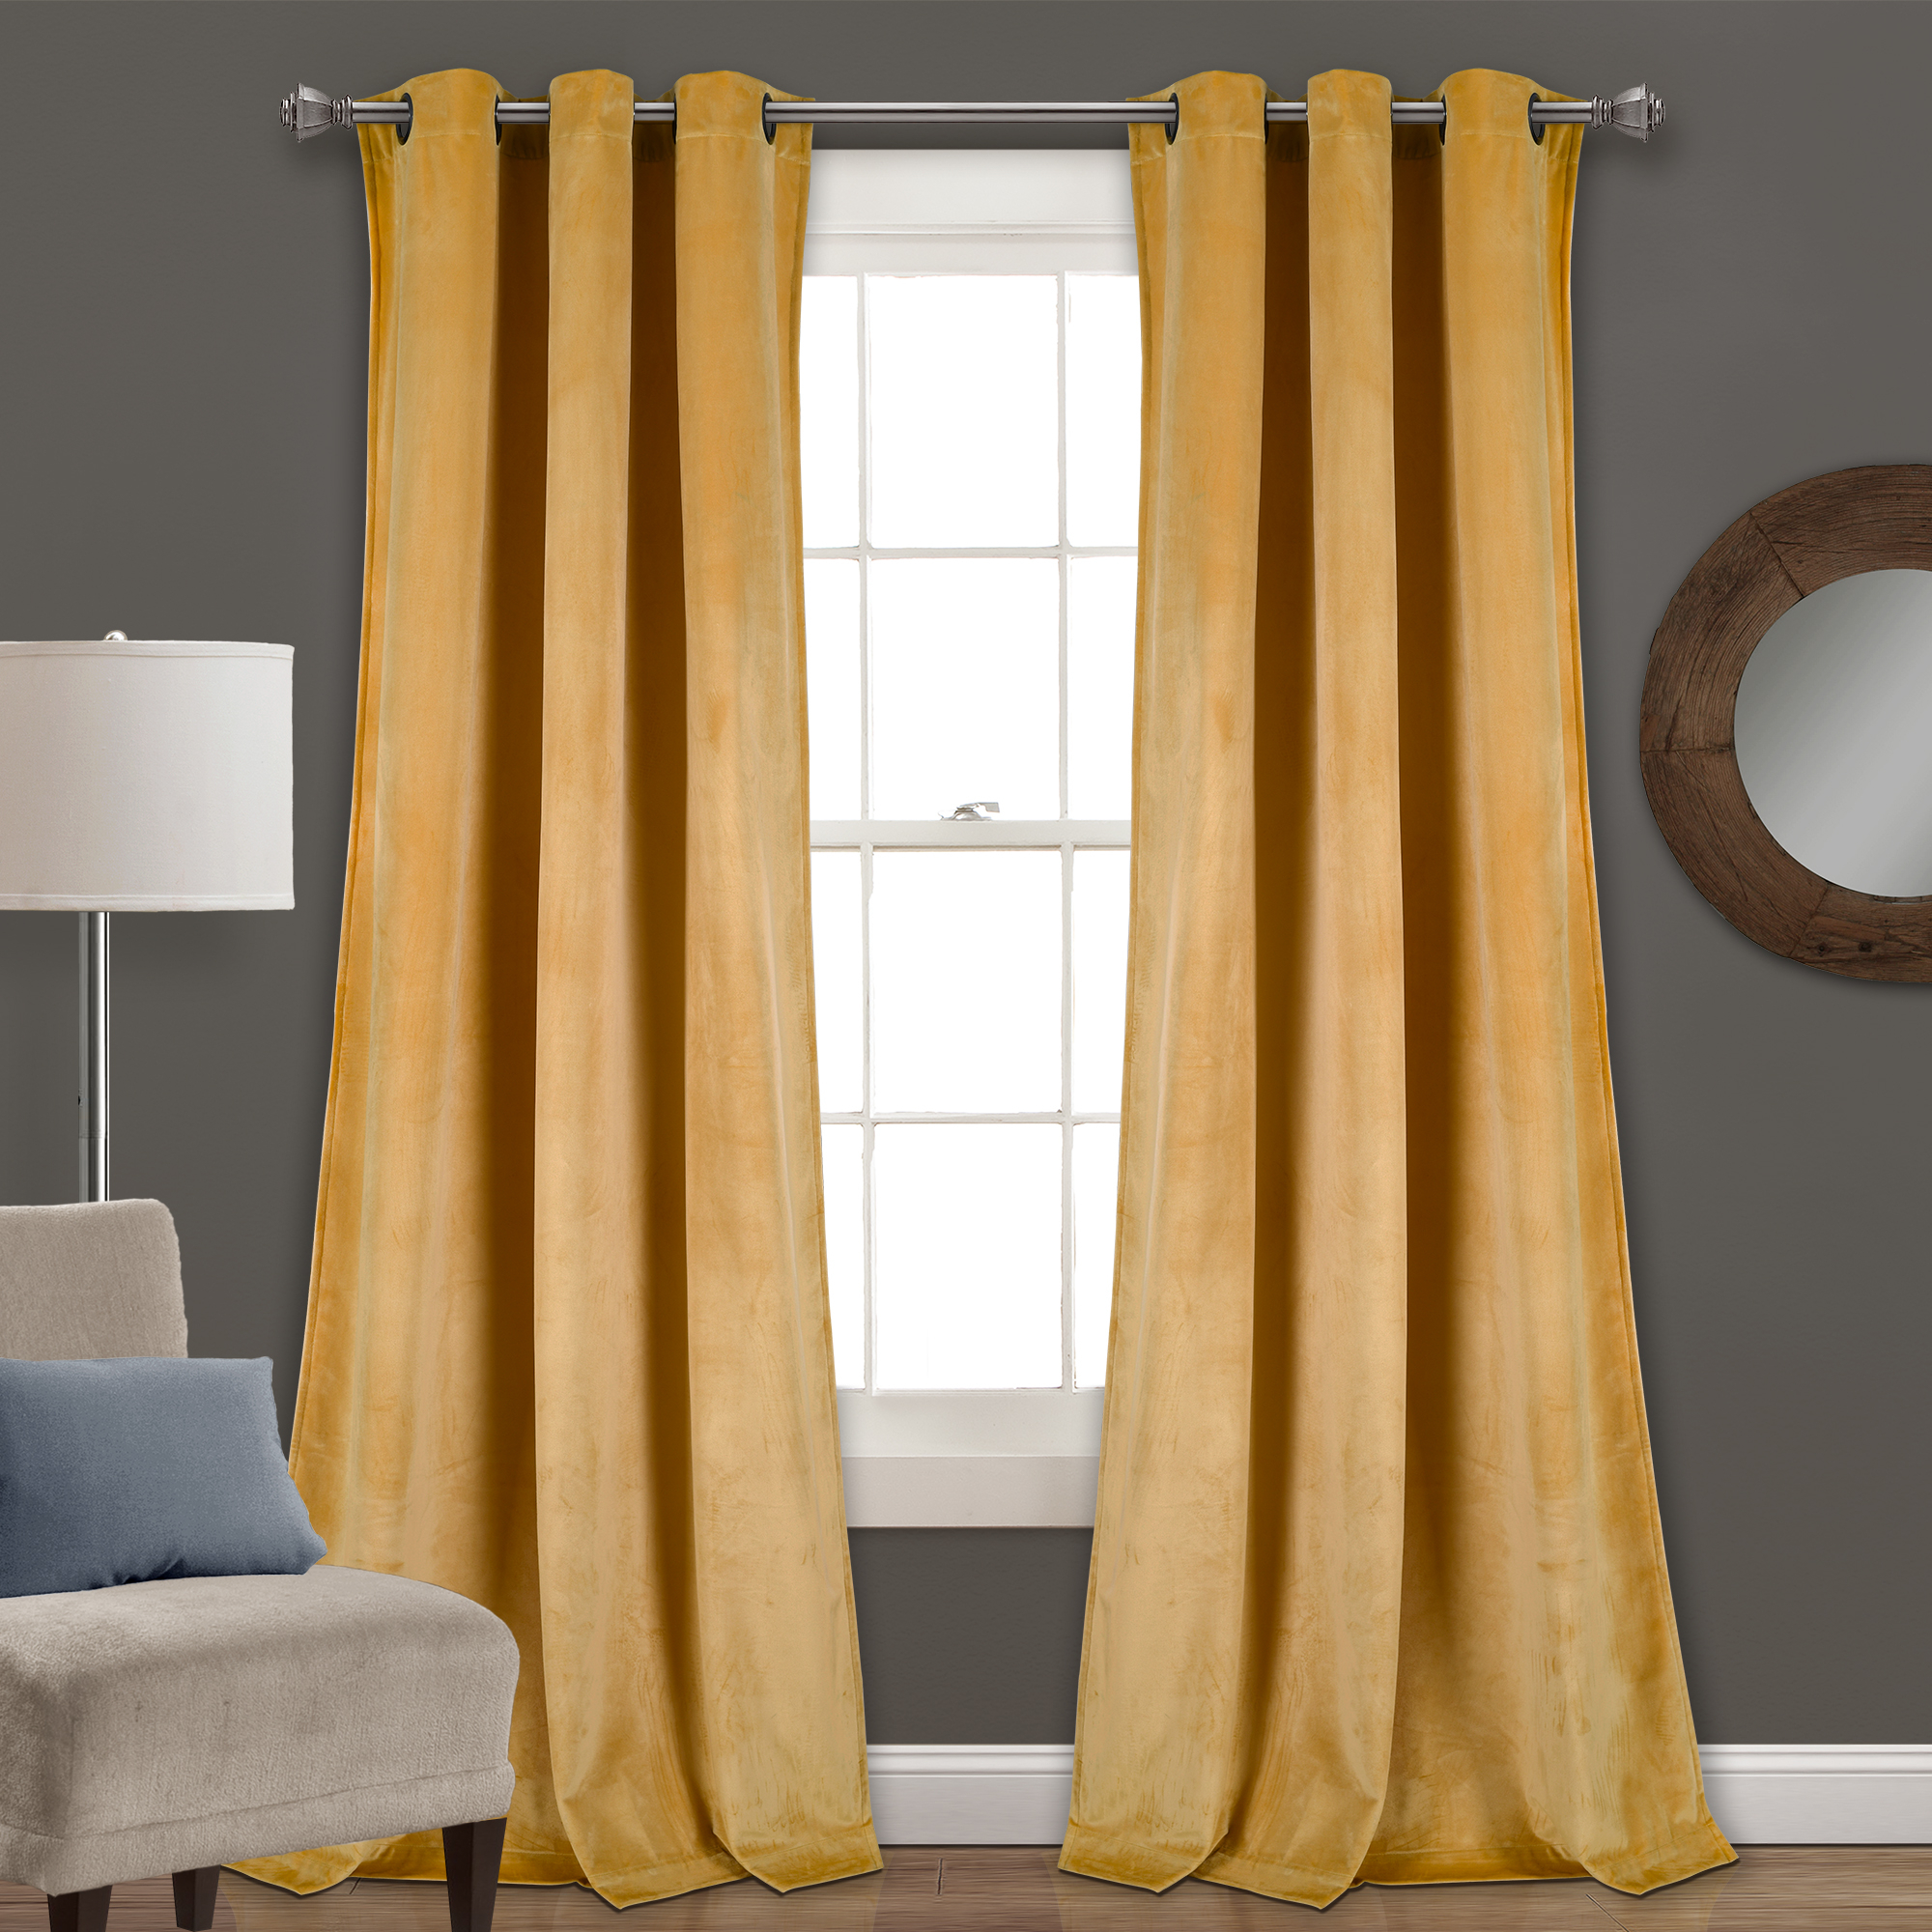 Half Moon Prima Velvet Solid Room Darkening Window Curtain Panels Yellow 38x84 Set With Velvet Solid Room Darkening Window Curtain Panel Sets (View 4 of 30)